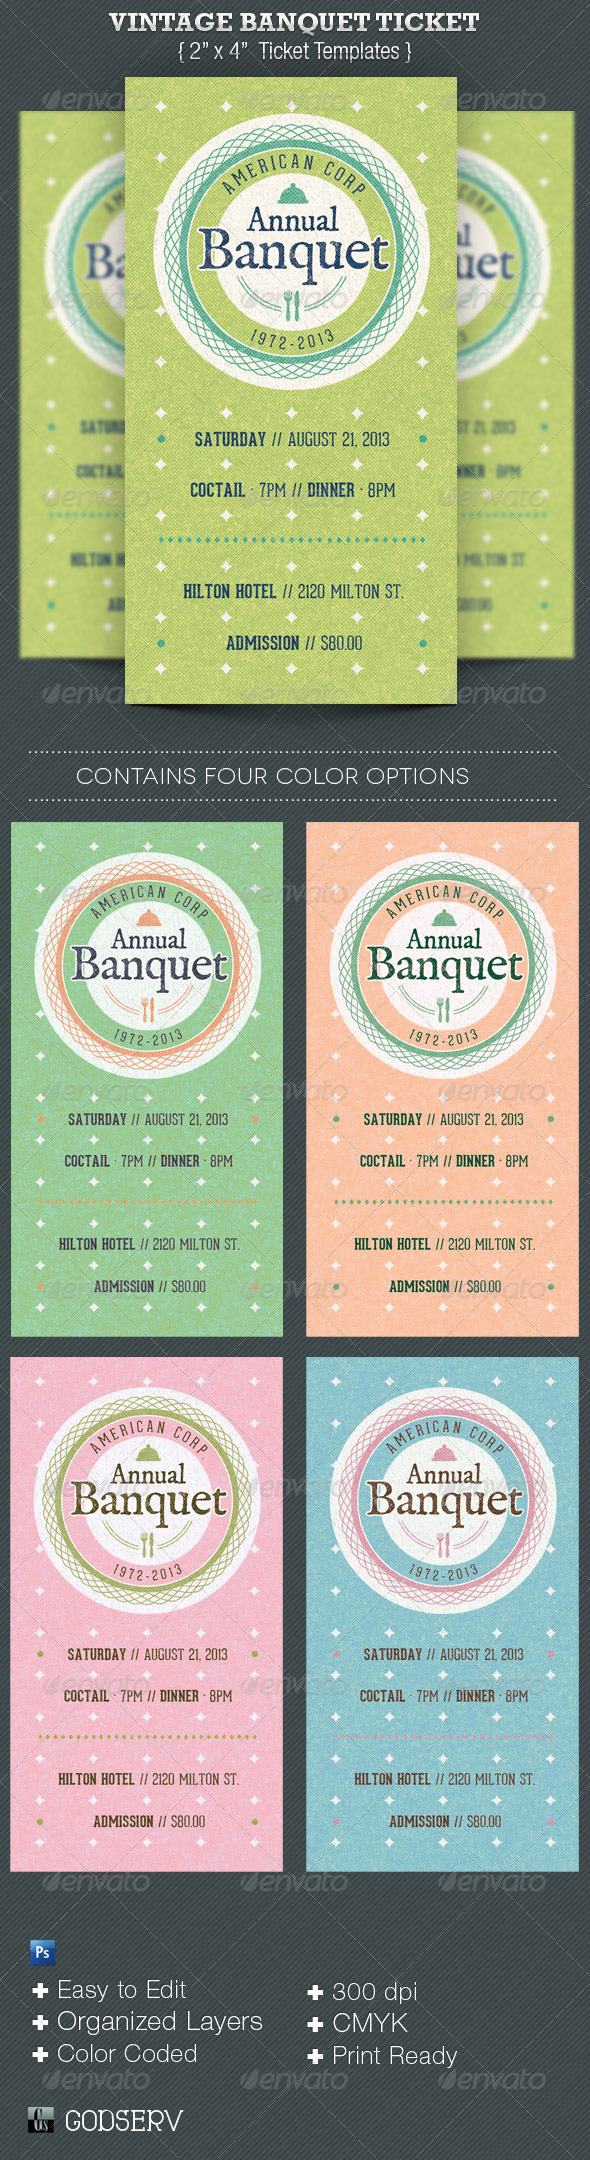 Vintage Banquet Ticket Template - Miscellaneous Print Templates